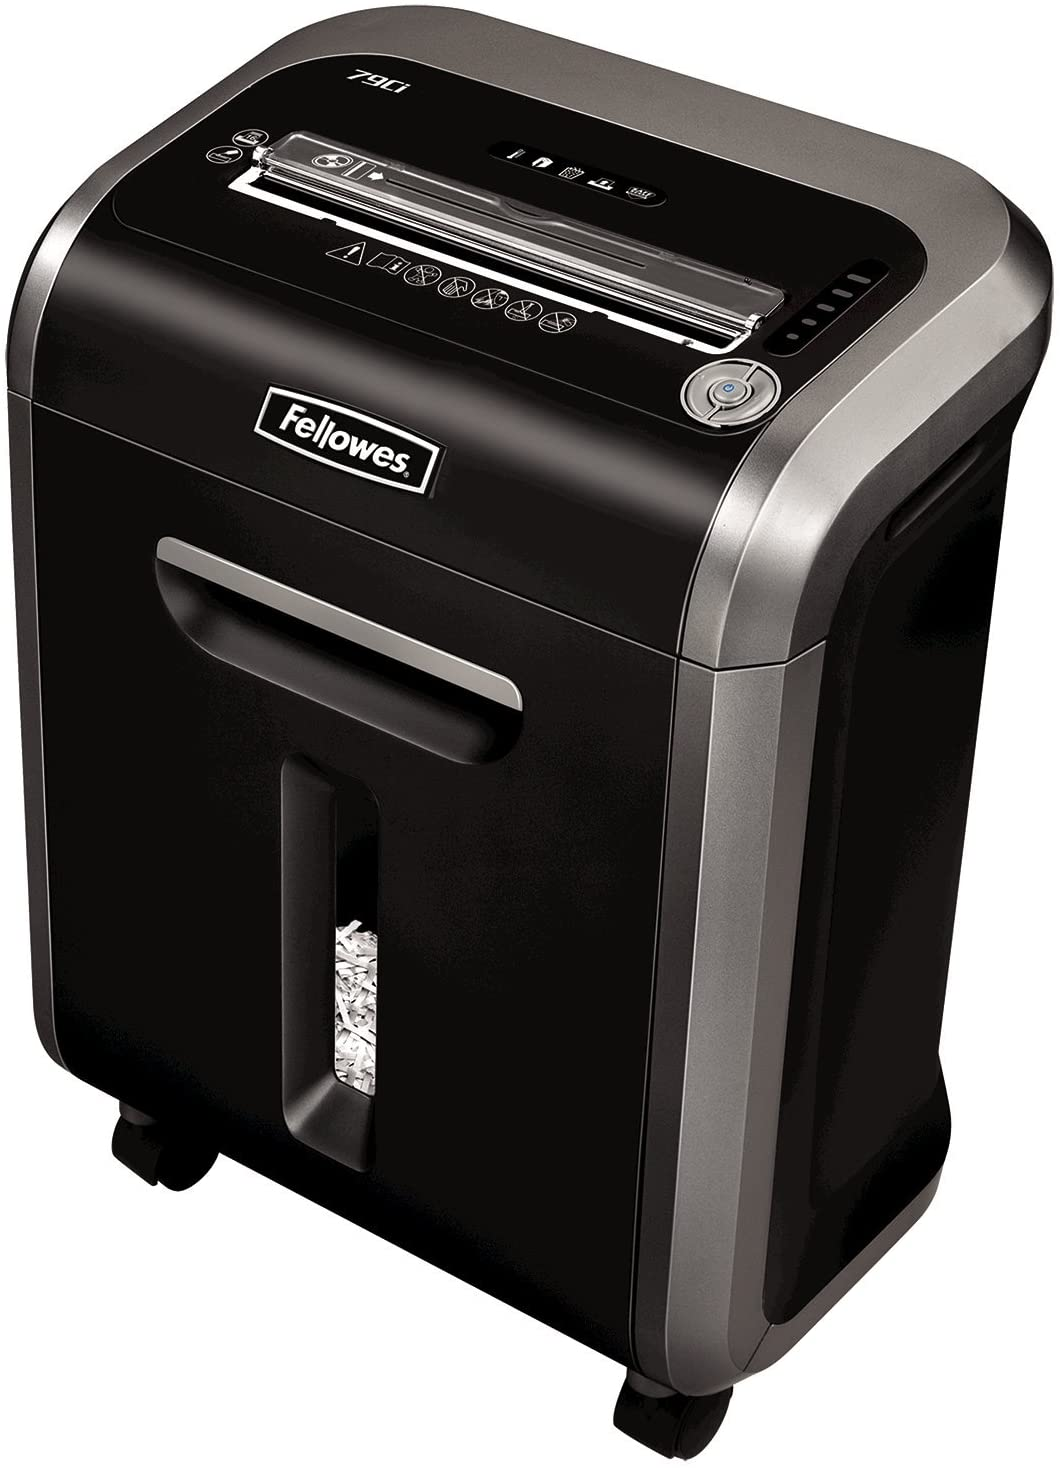 Fellowes Powershred 79Ci 16 Sheet Cross Cut Paper Shredder for the Small or Home Office with 100 Percent Jam Proof, SafeSense and Silent Shred, Black uk reviews